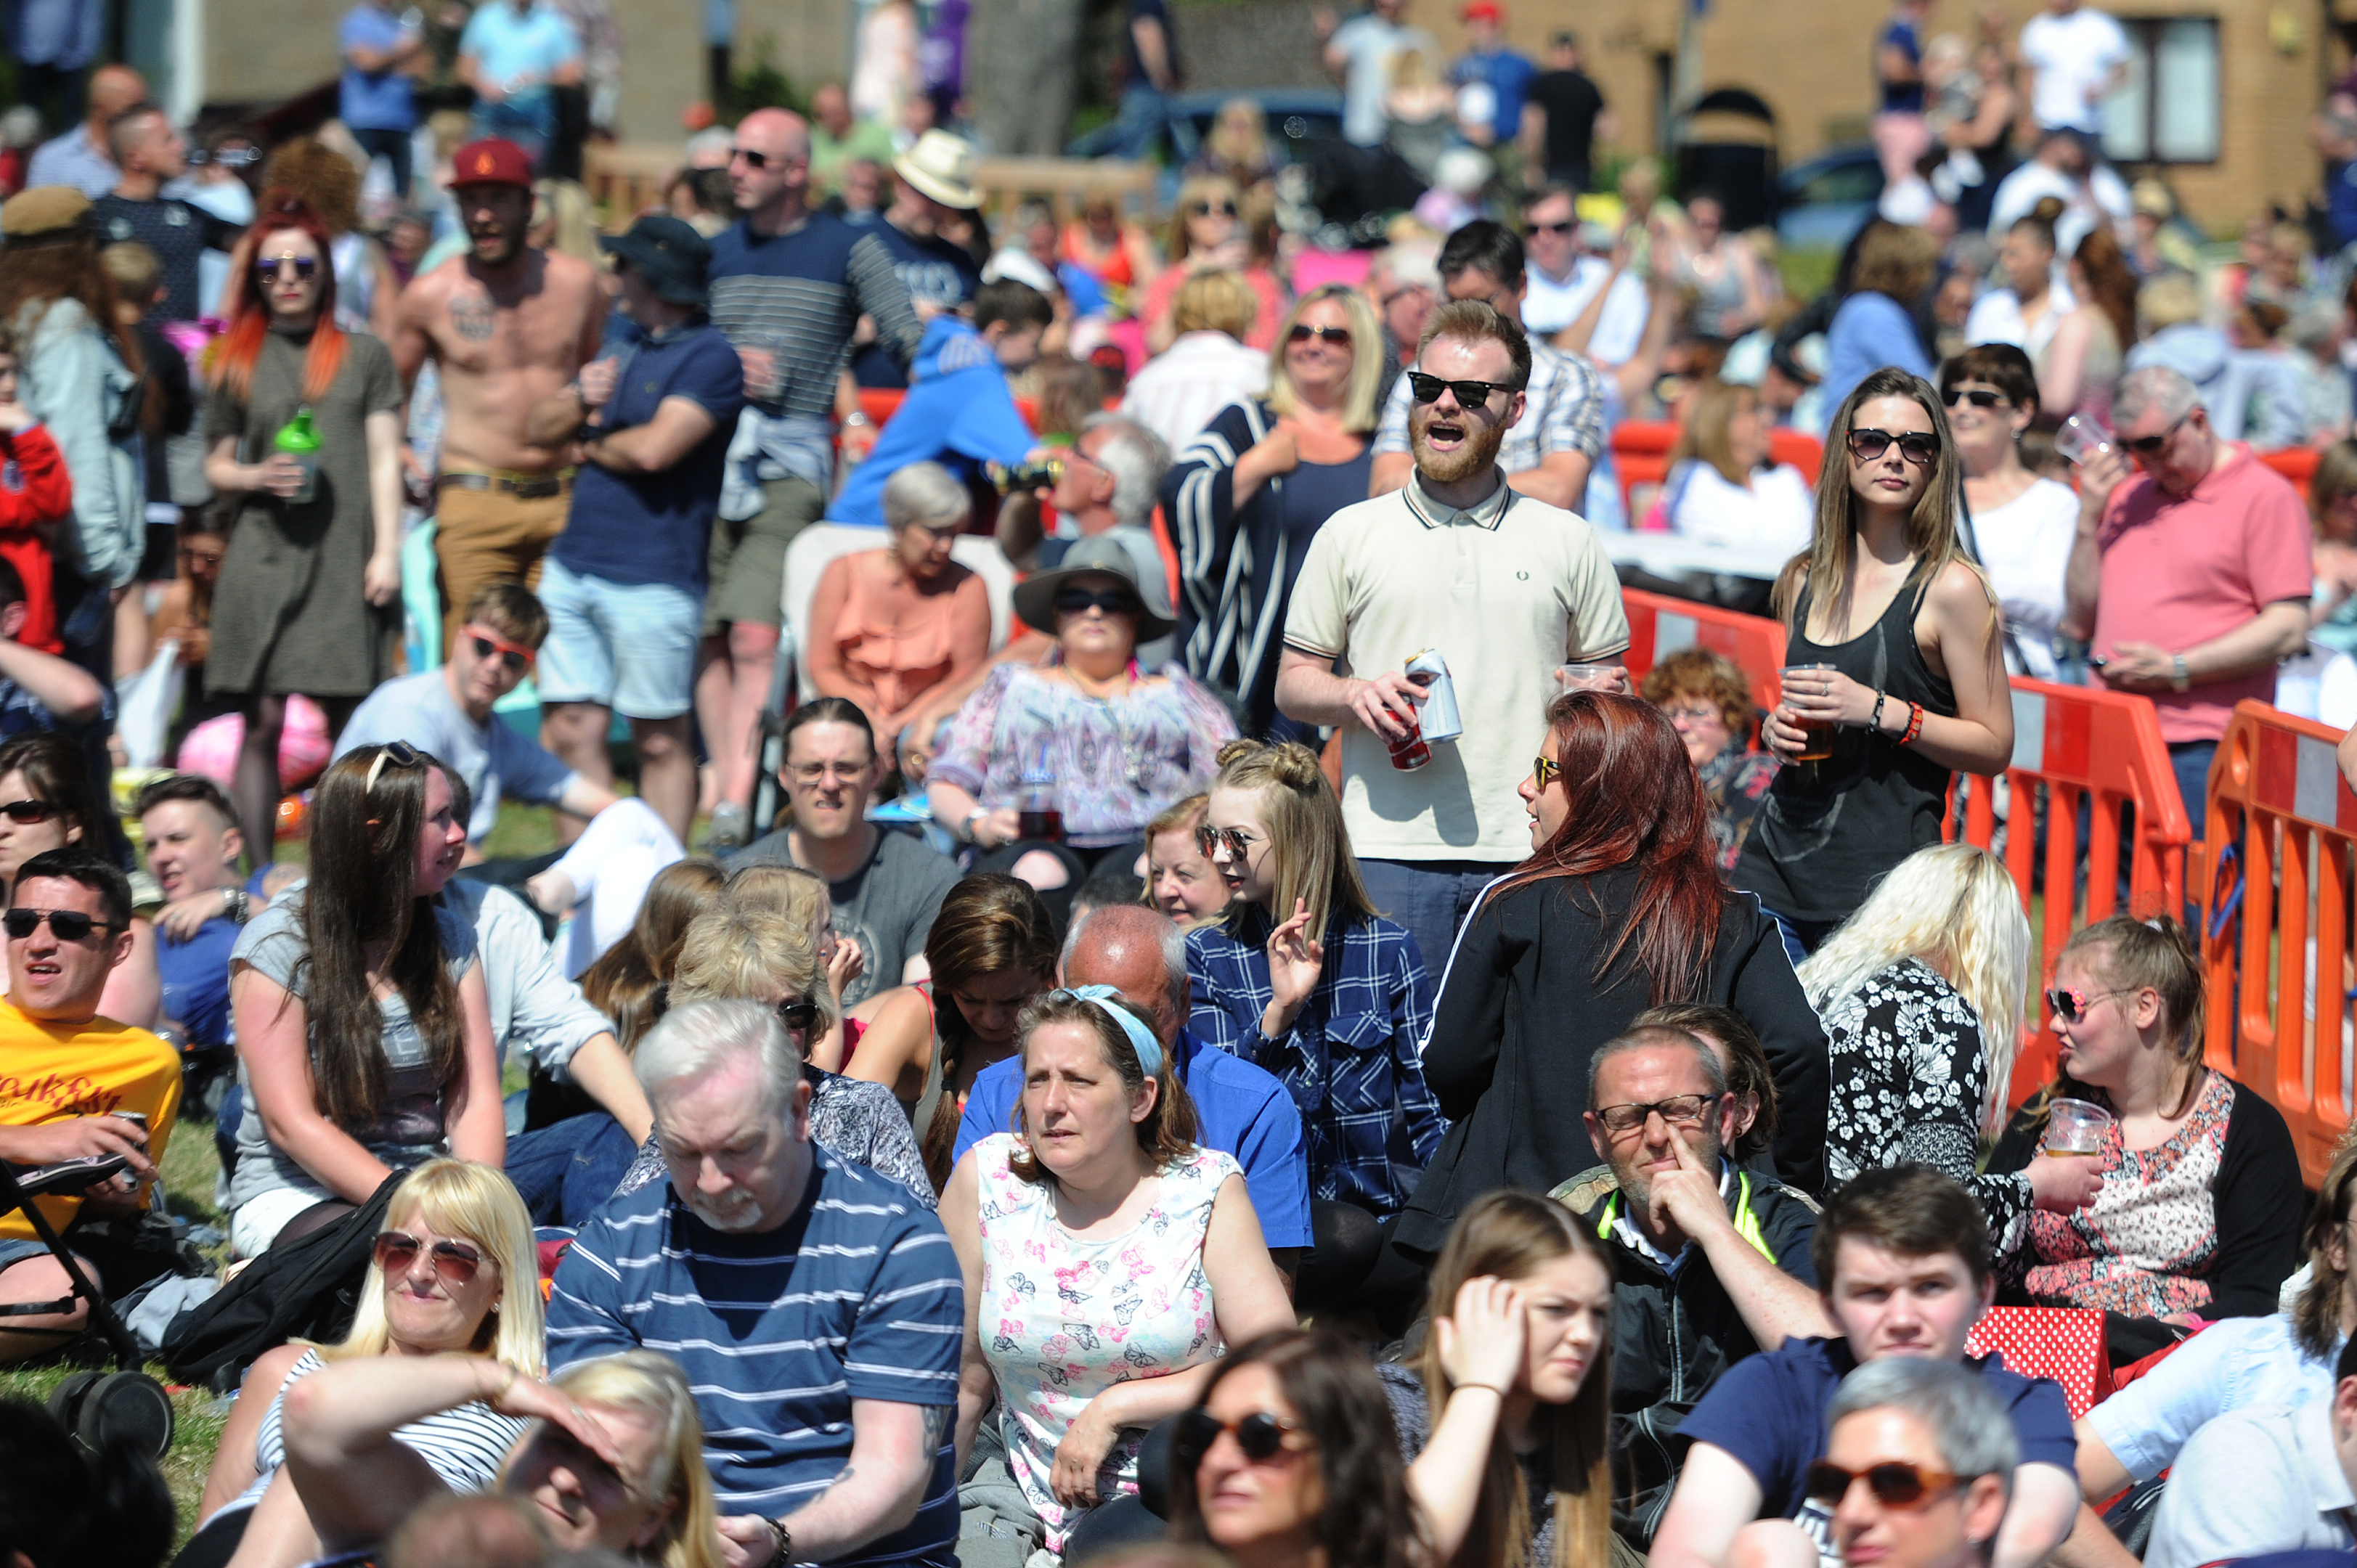 The new restrictions are a response to the dramatic growth in crowd numbers at Westfest's Big Sunday.